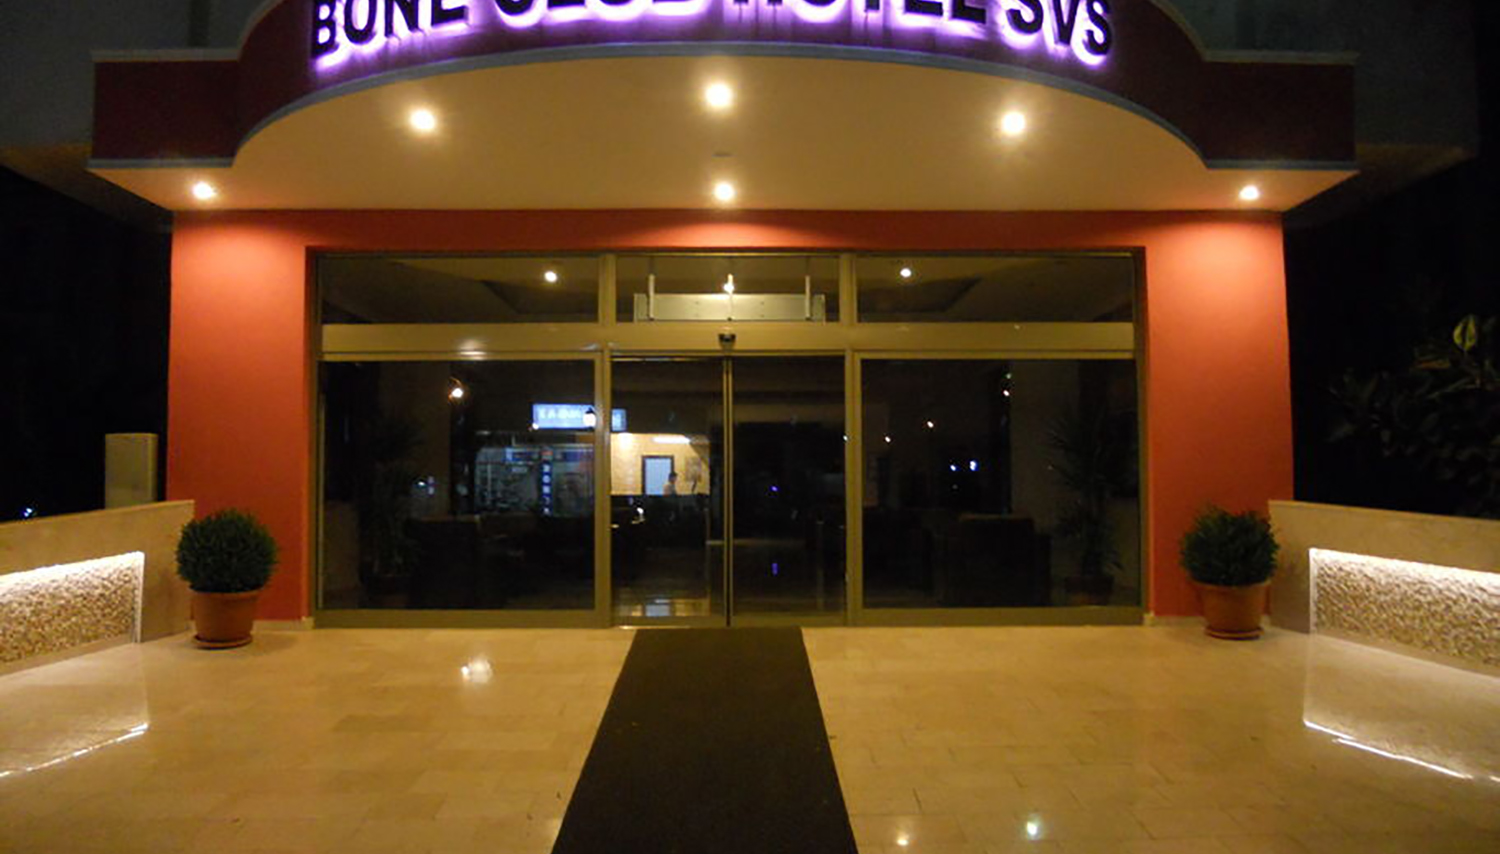 Bone Club SVS hotell (Antalya, Türgi)